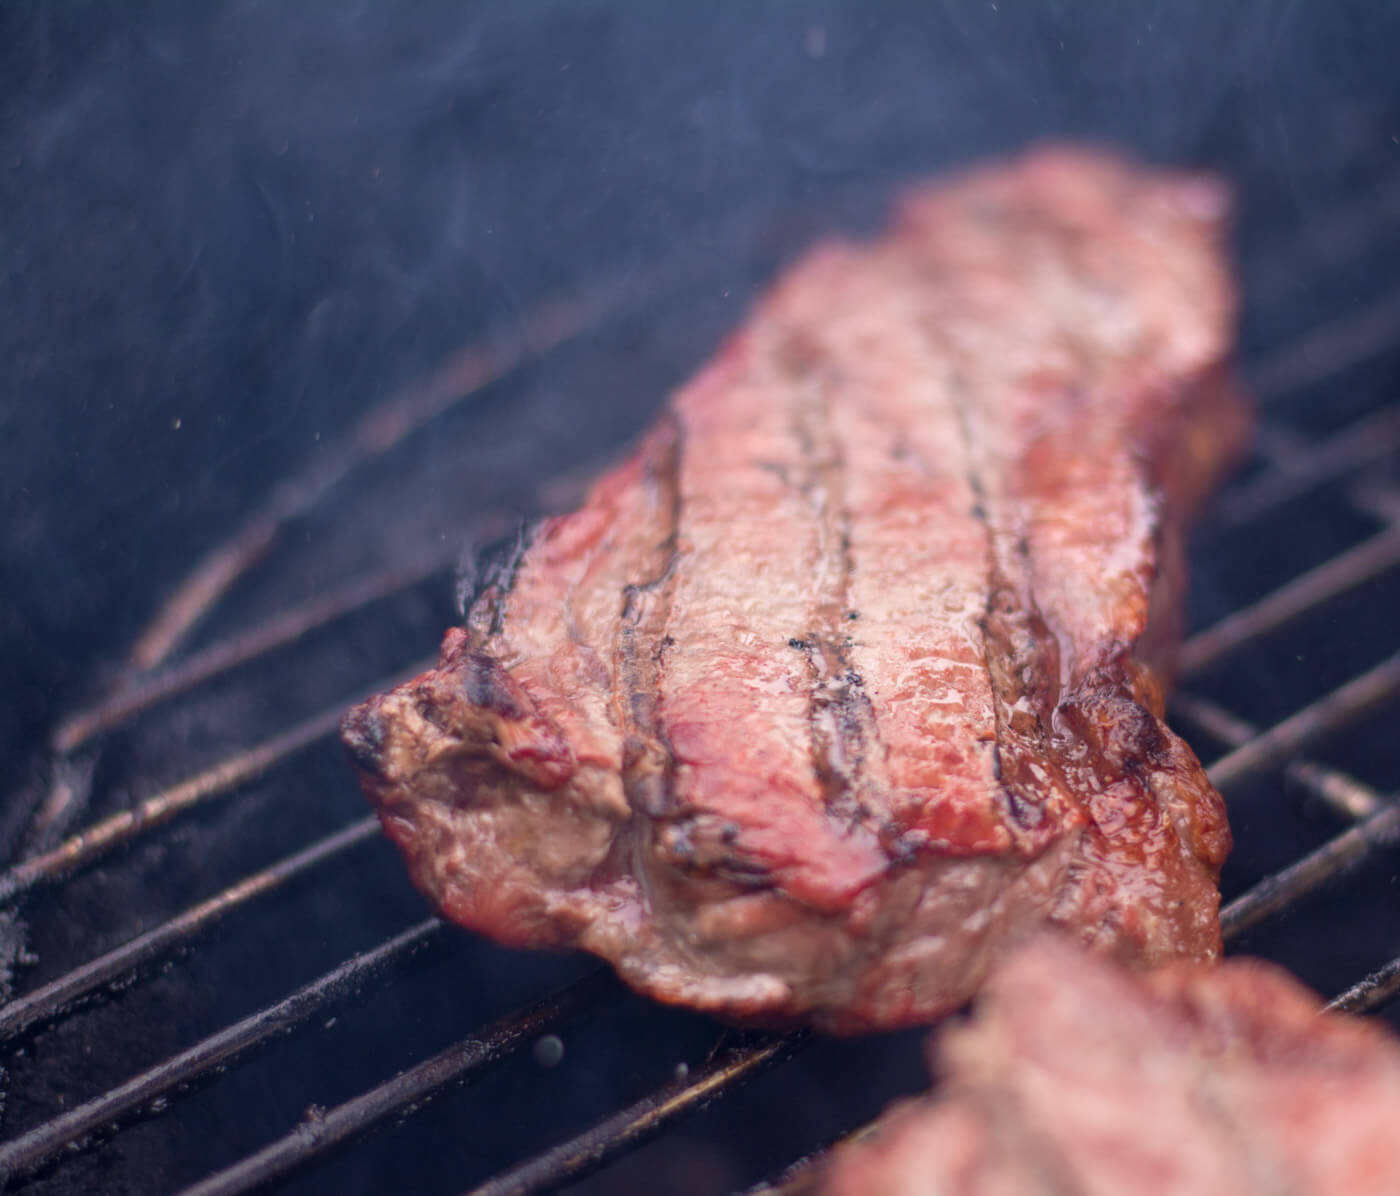 Strip Steak Grilling on the Big Green Egg - Kamado Style